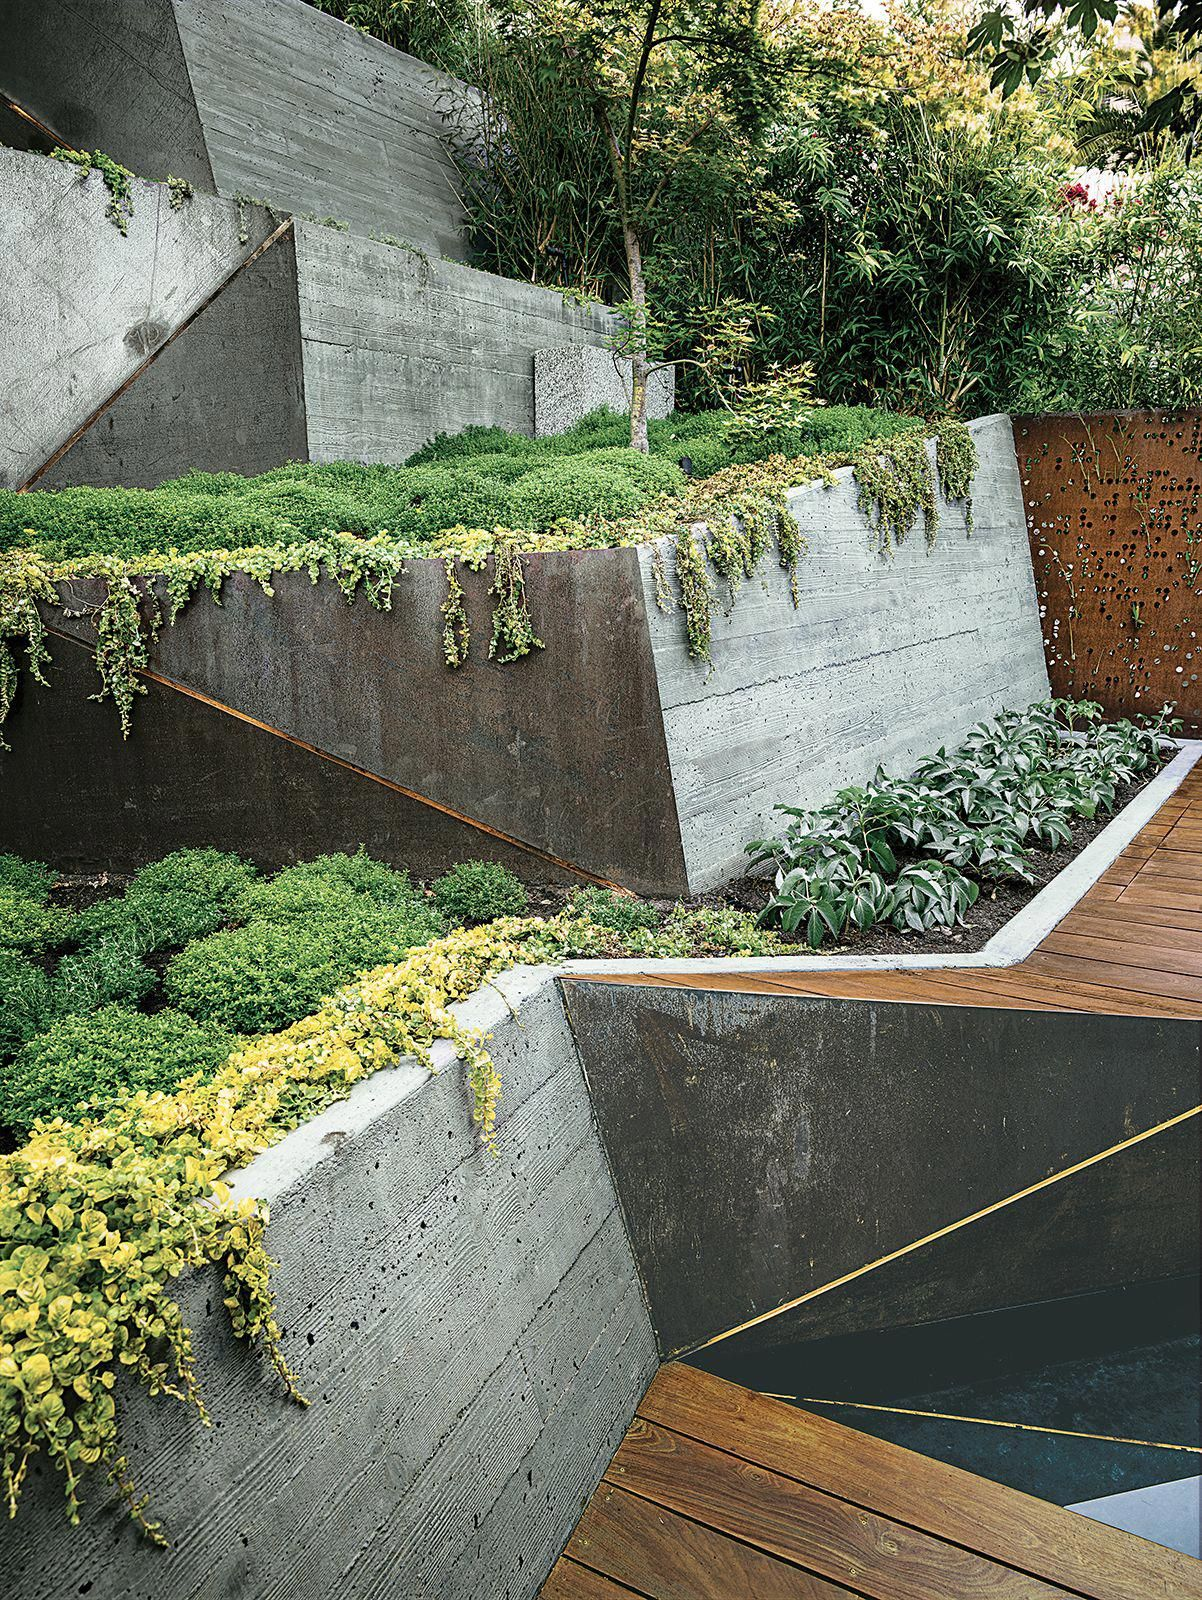 Board Formed Concrete Retaining Walls Double As Ramps From The Deck To The Garden S Highest Point Modern Landscaping Modern Landscape Design Landscape Design